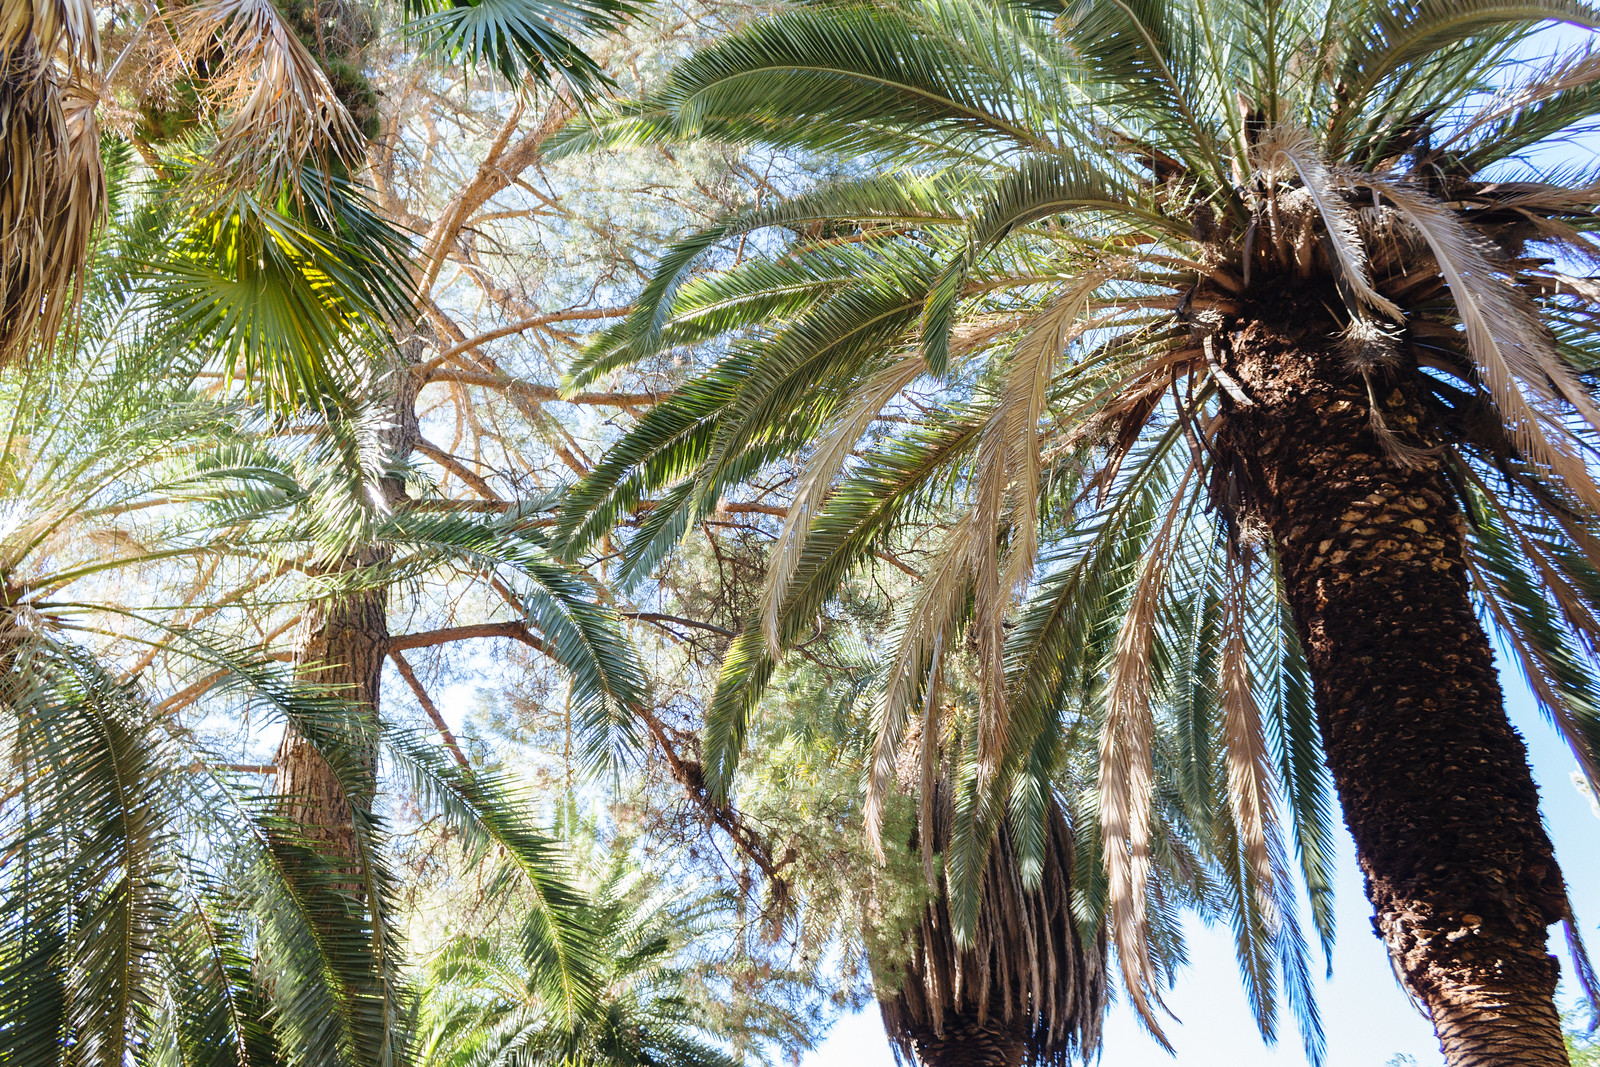 Multiple varieties of palm trees growing densely together